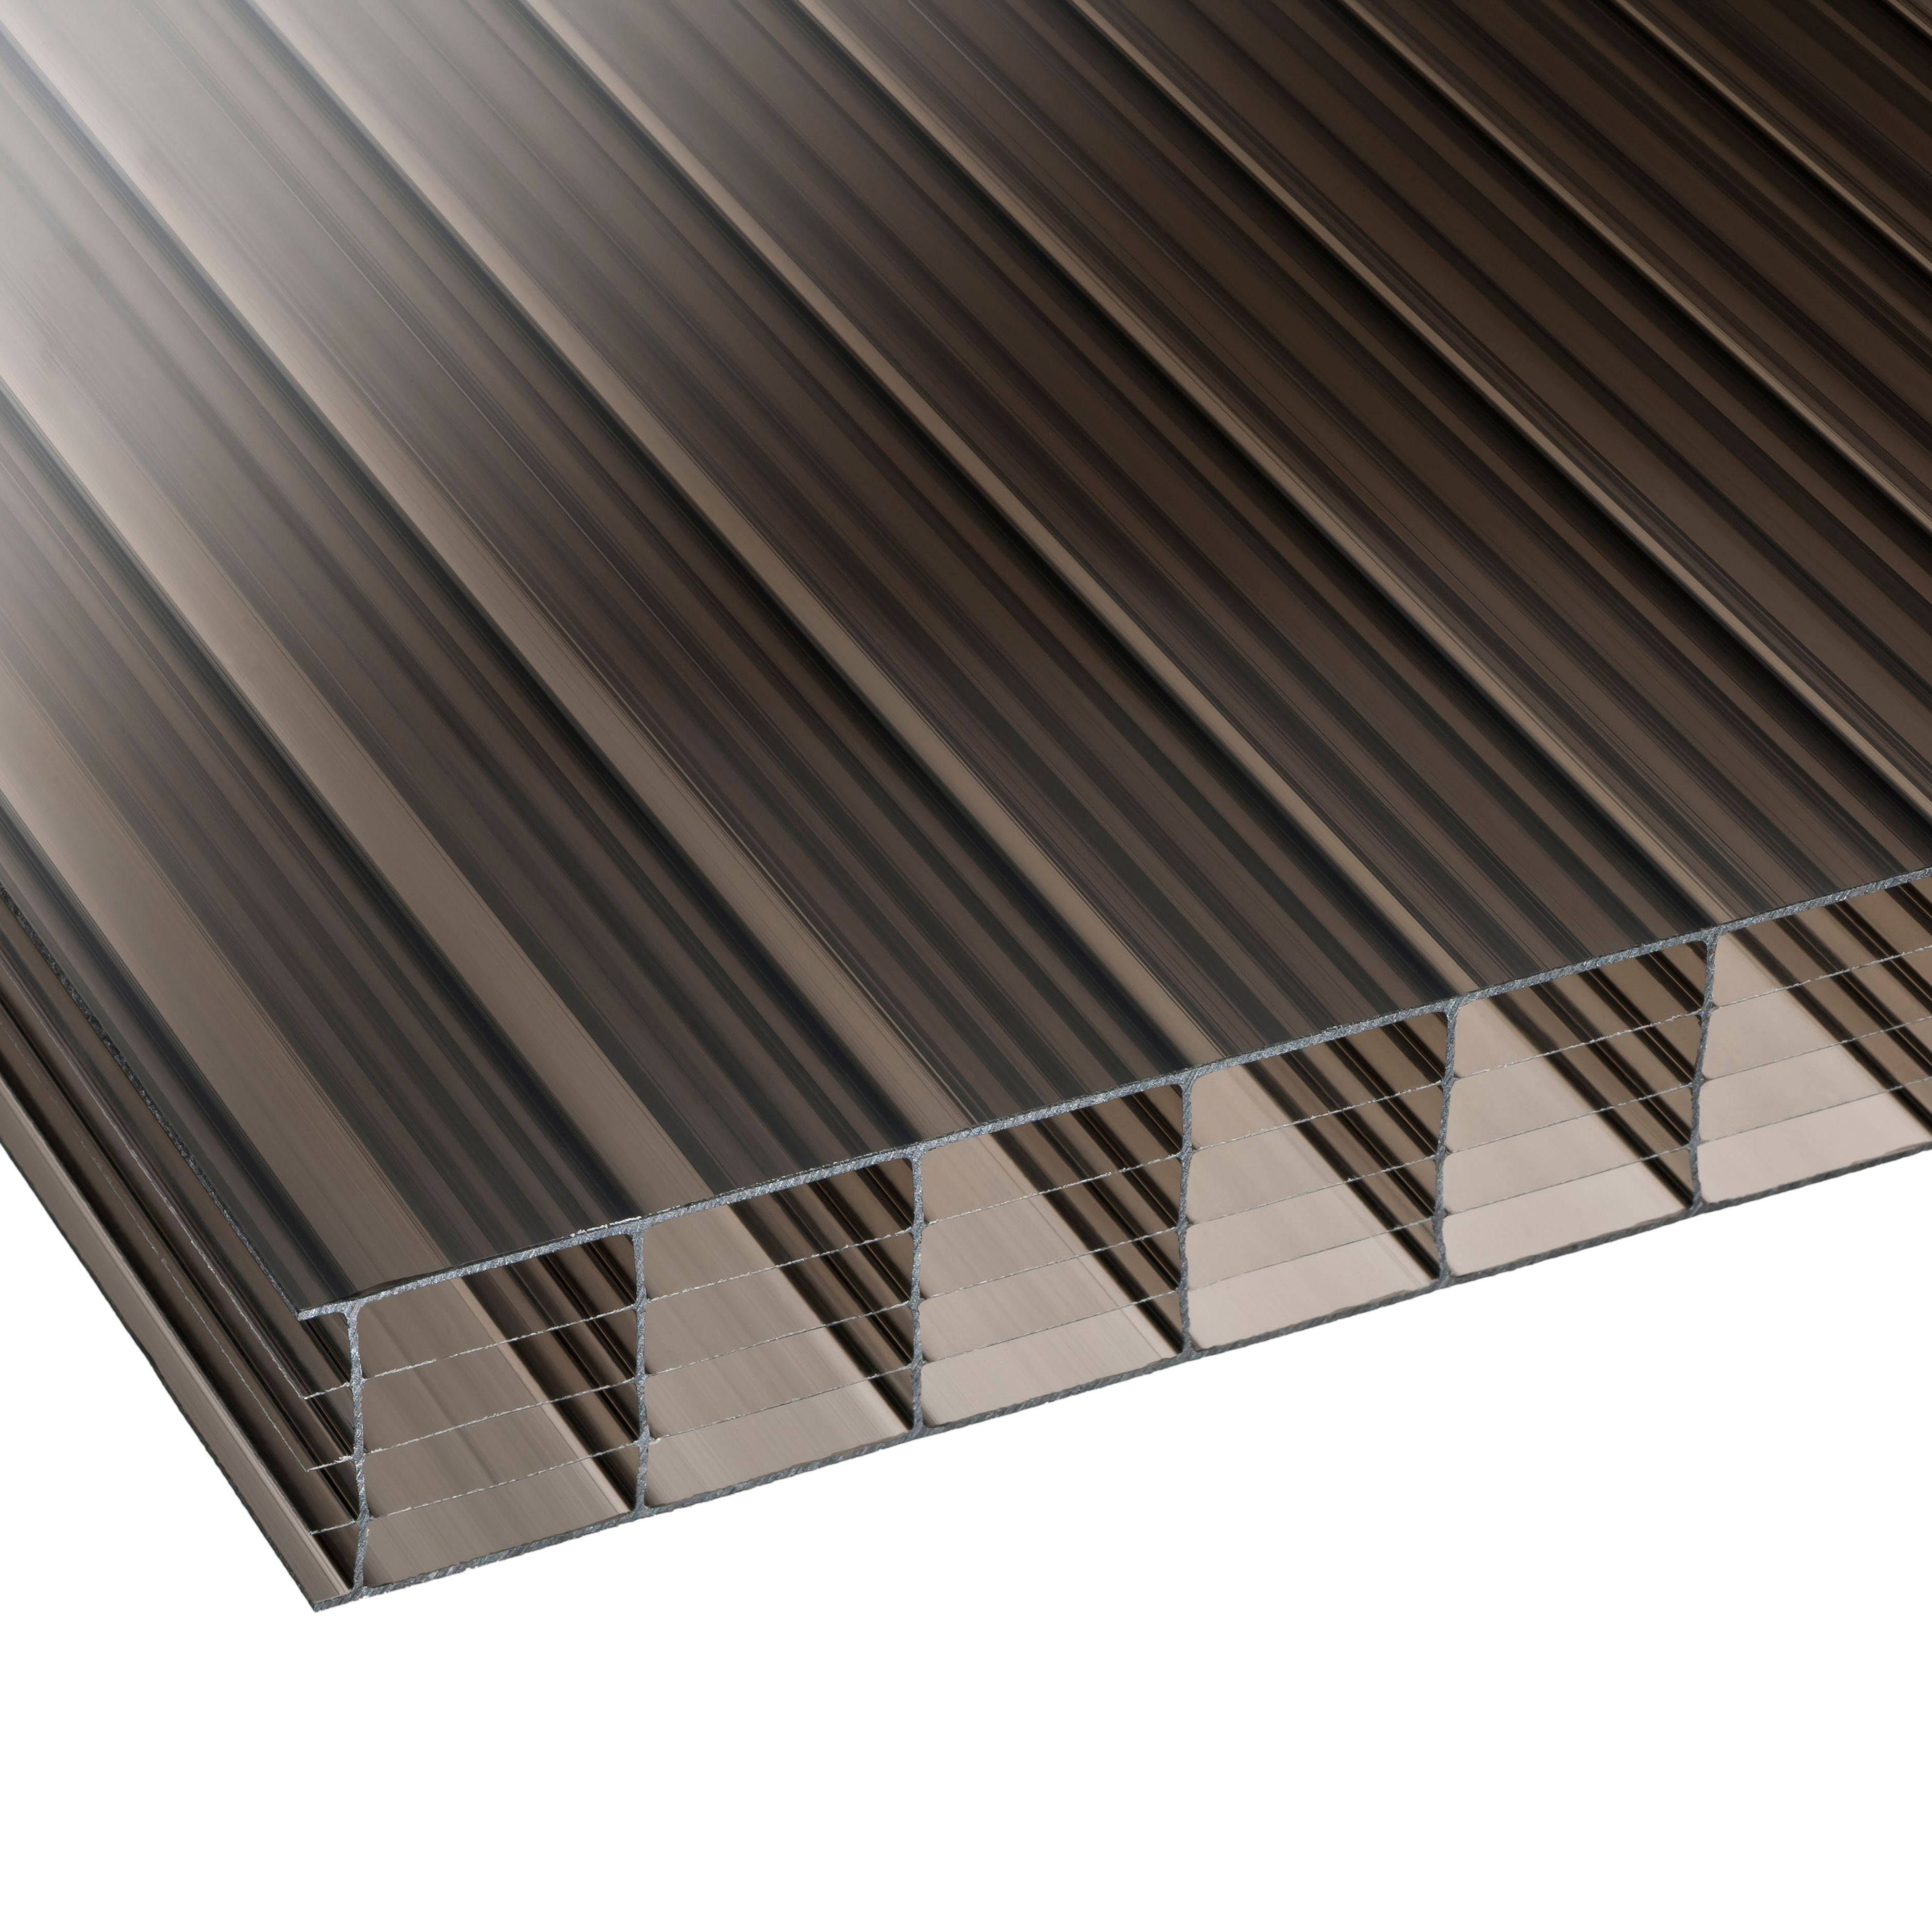 Bronze Multiwall Polycarbonate Roofing Sheet 3m X 980mm, Pack Of 5